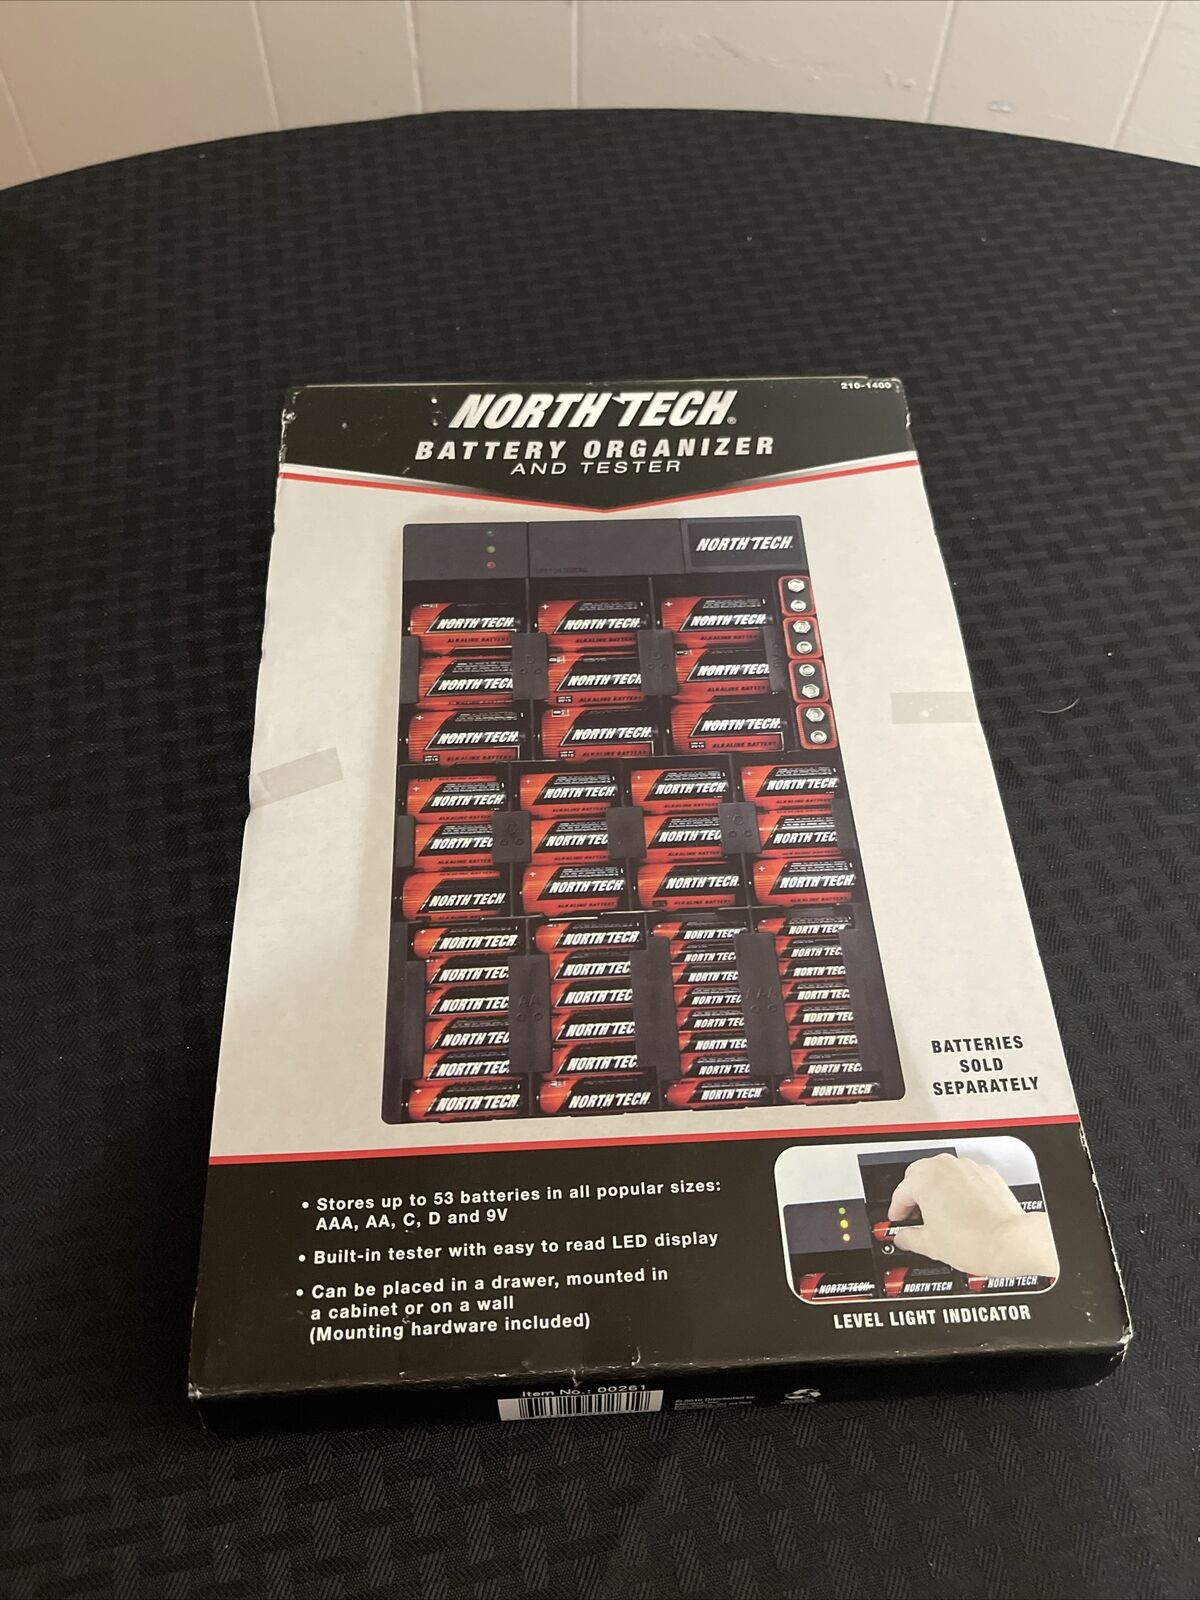 NORTH TECH BATTERY ORGANIZER AND TESTER Stores up to 53 batteries New